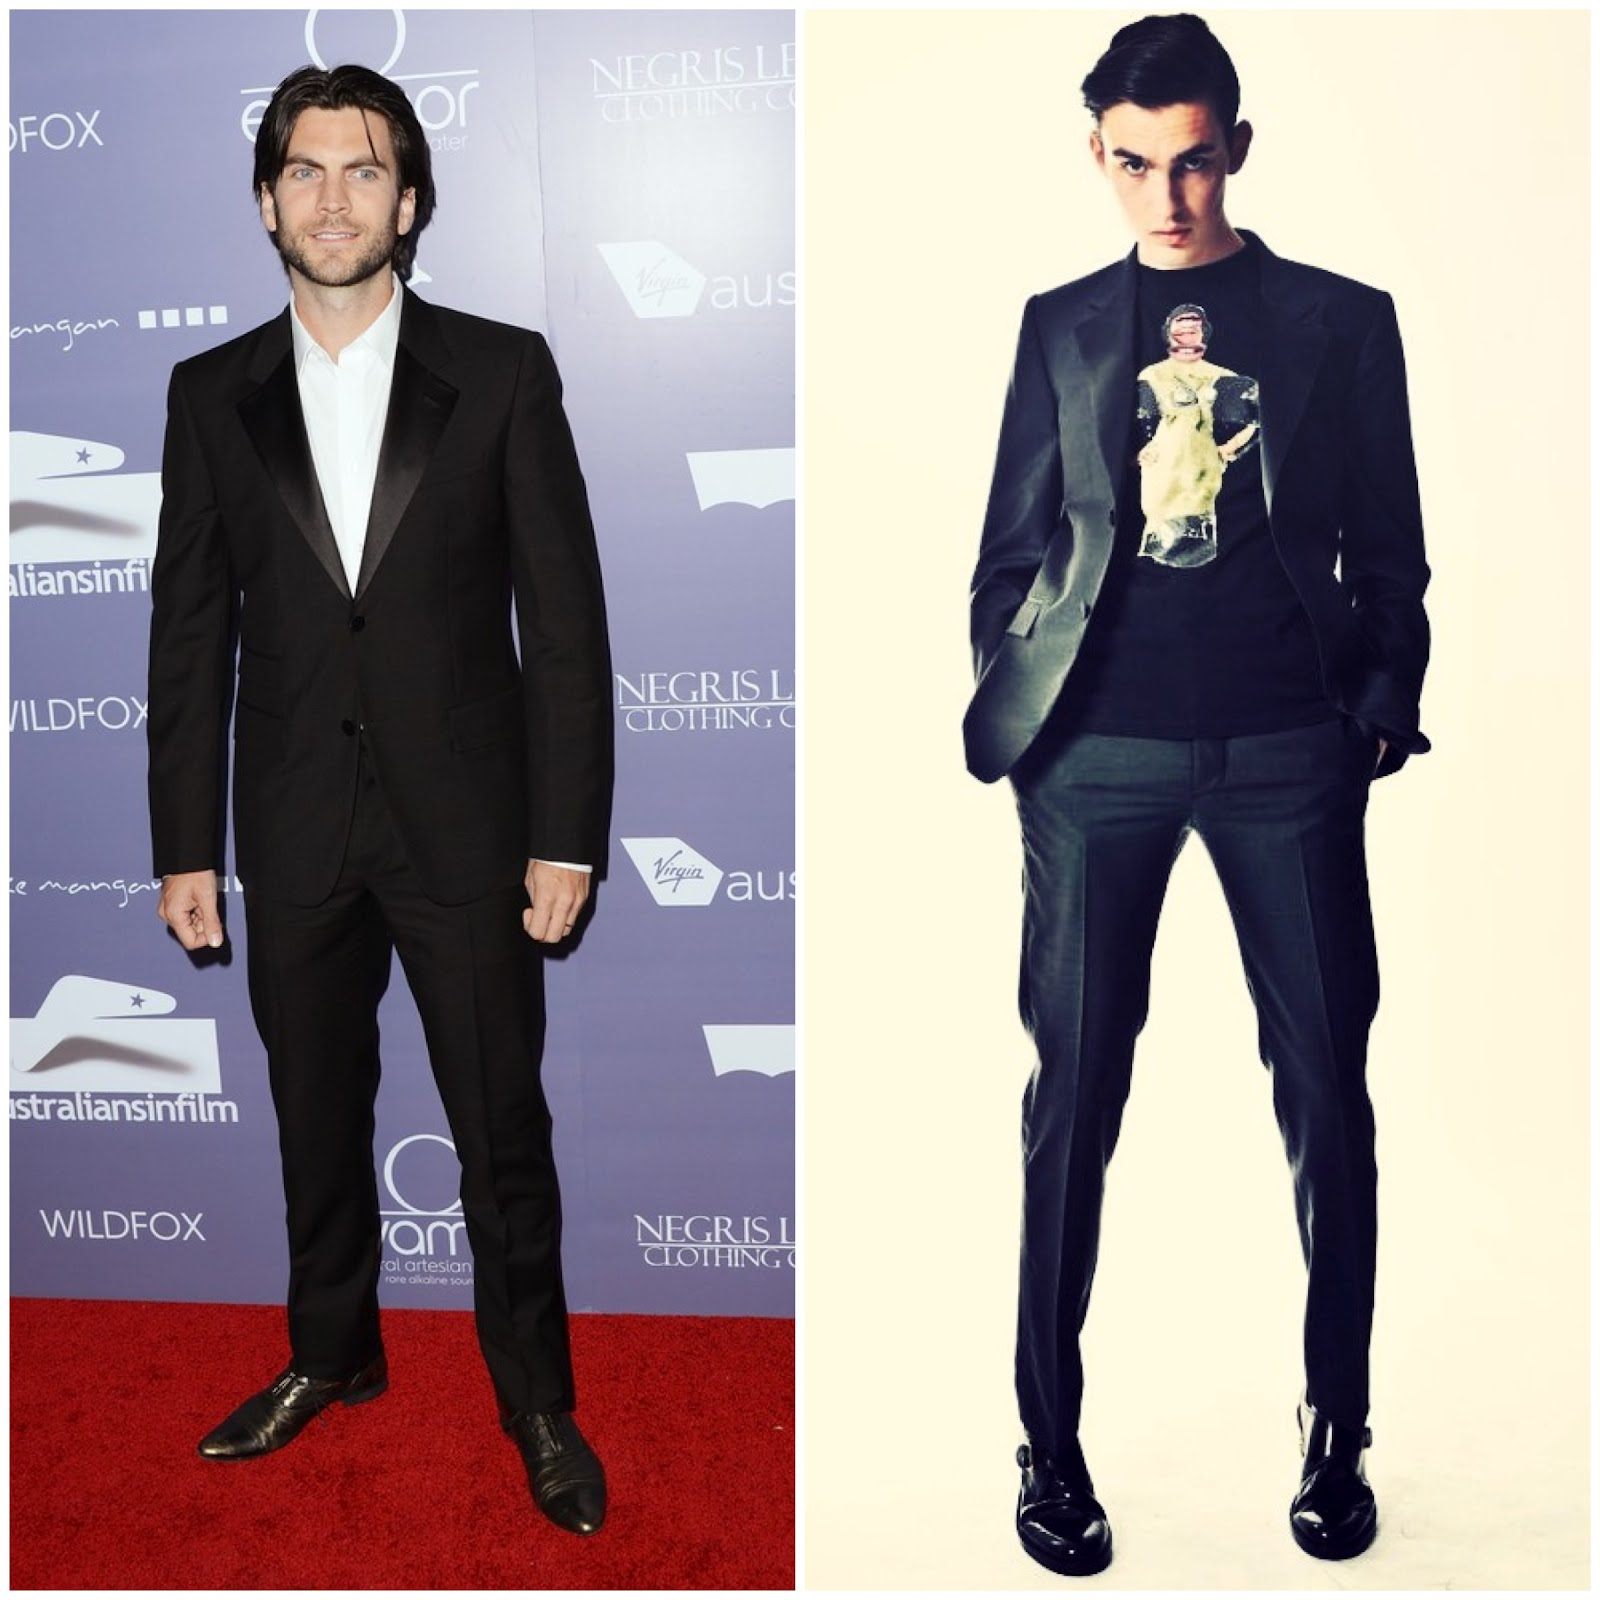 00O00 London Menswear Blog celebrity style Wes Bentley at Australians In Film Awards & Benefit Dinner at InterContinental Hotel on June 27, 2012 in Century City, California in Marc Jacobs